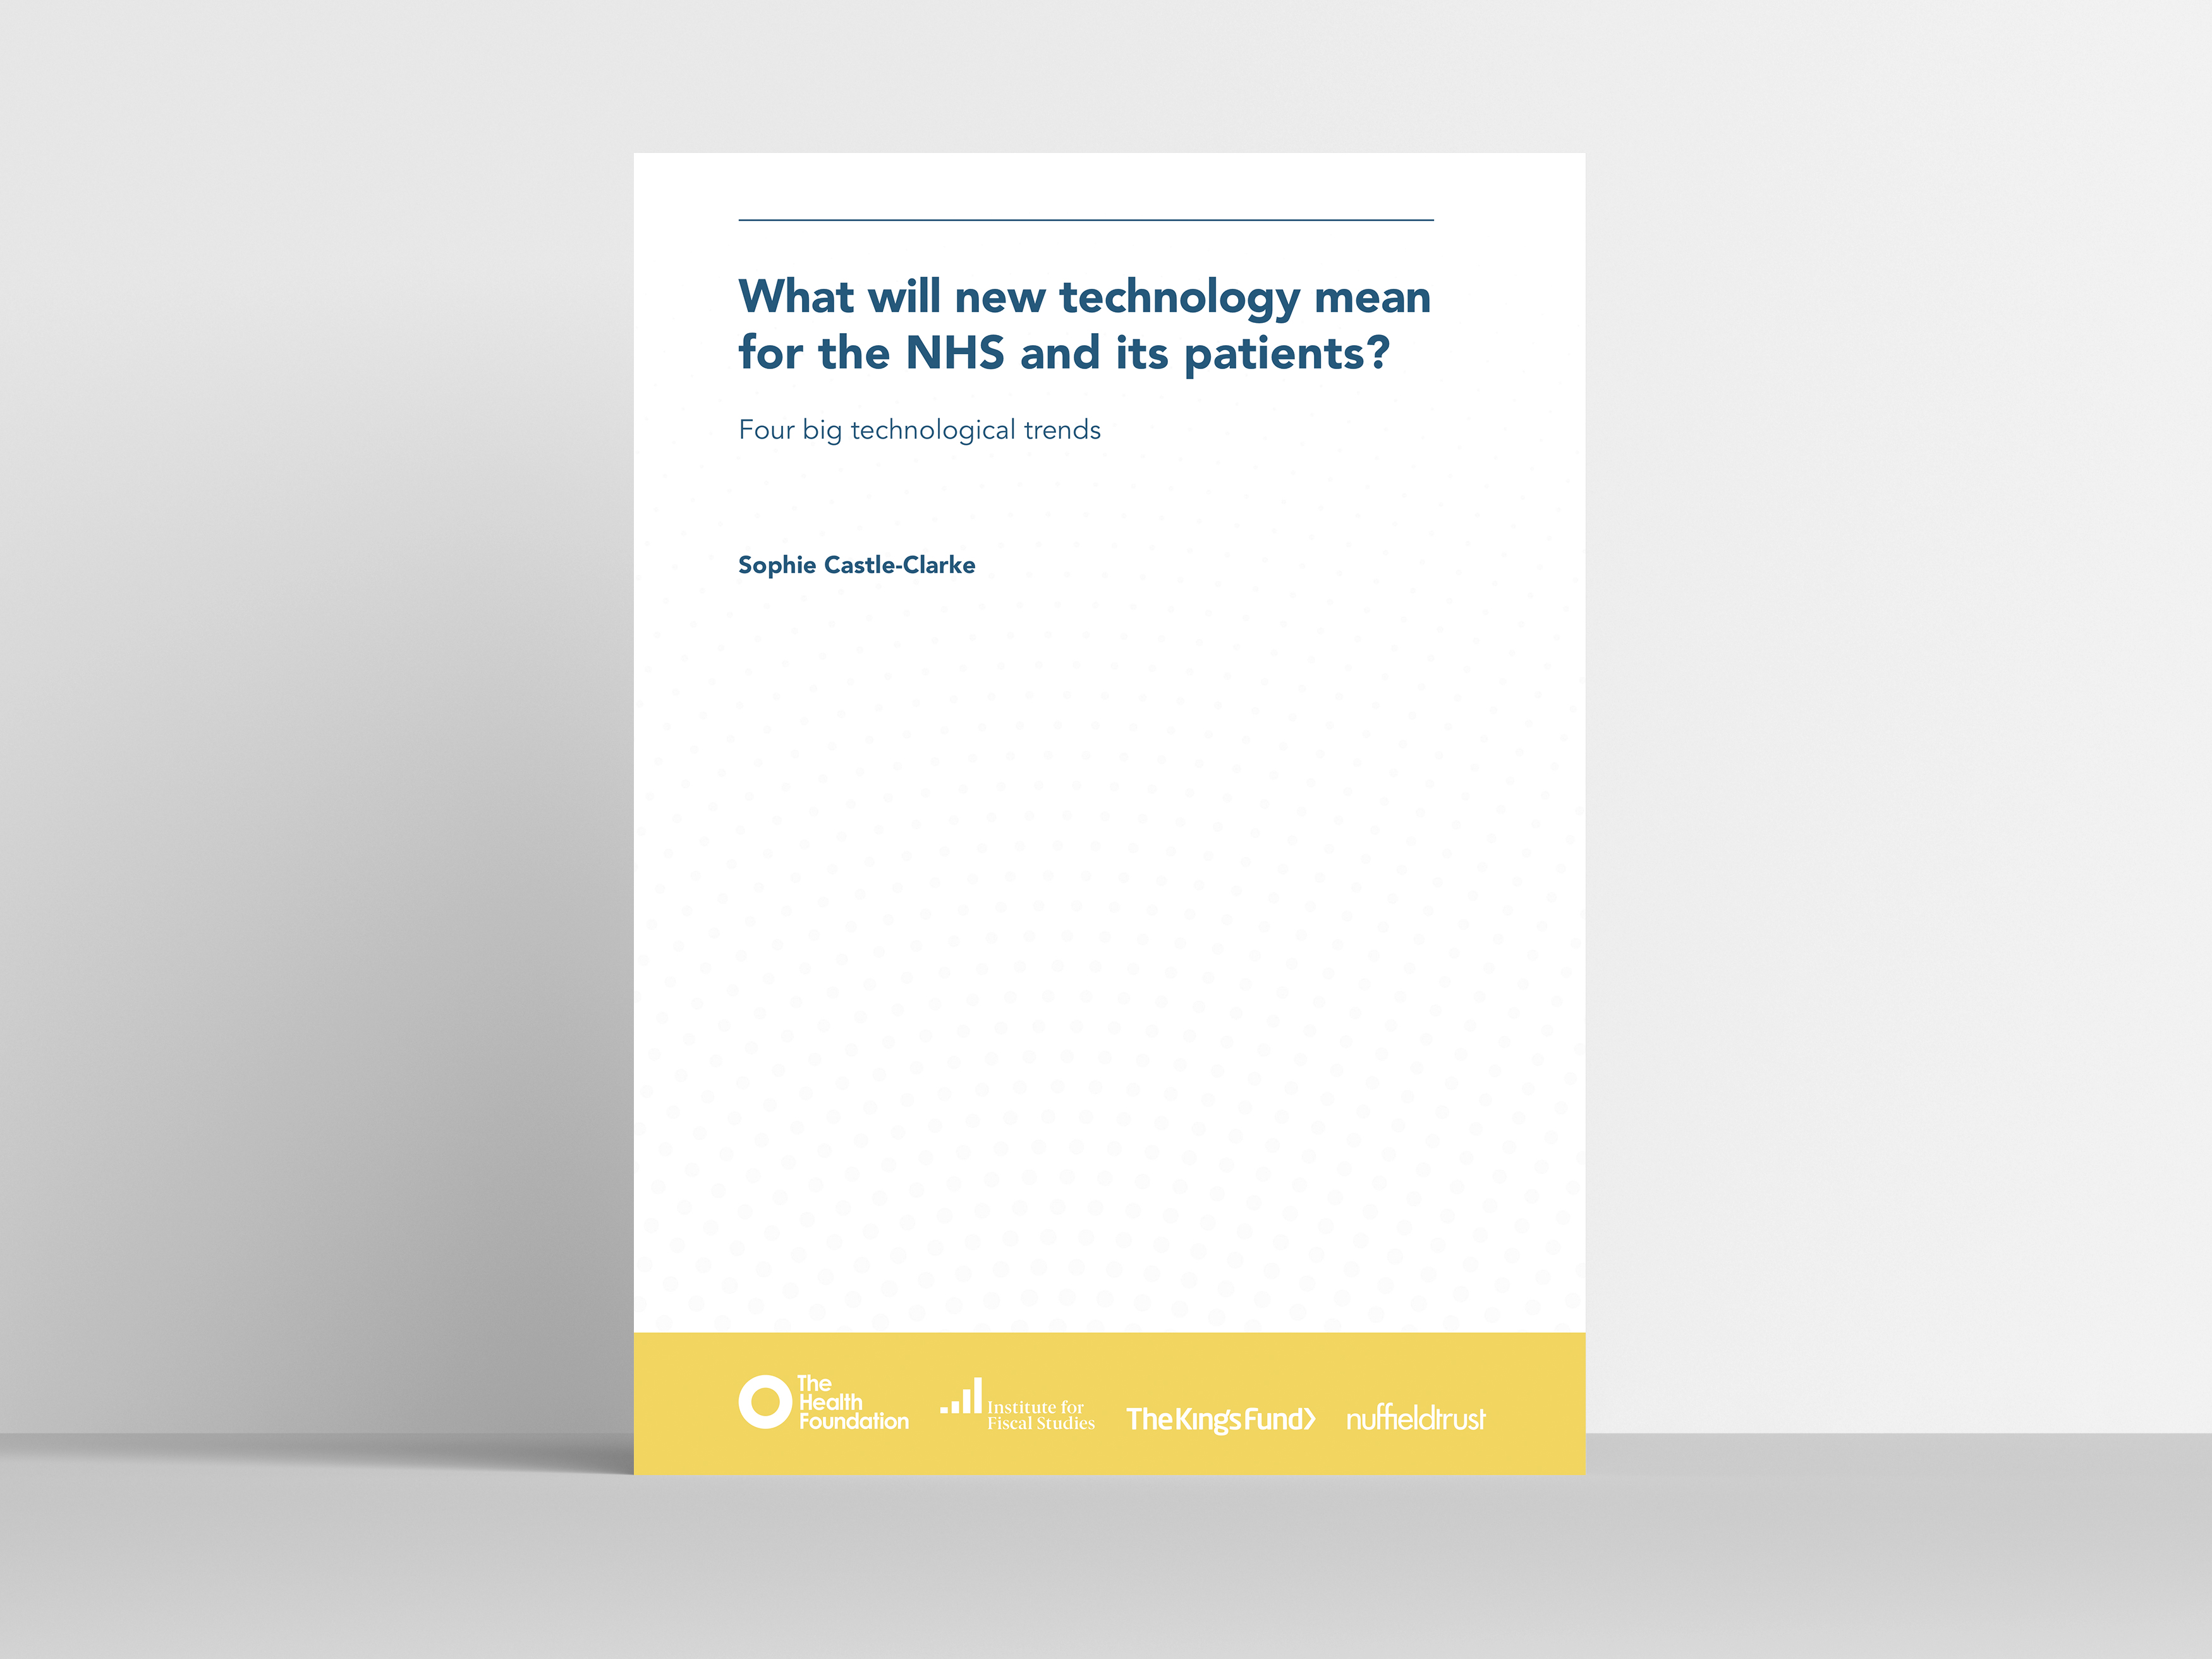 https://musica-music.co.uk/wp-content/uploads/2018/10/What-will-new-technology-mean-for-the-NHS-final.jpg